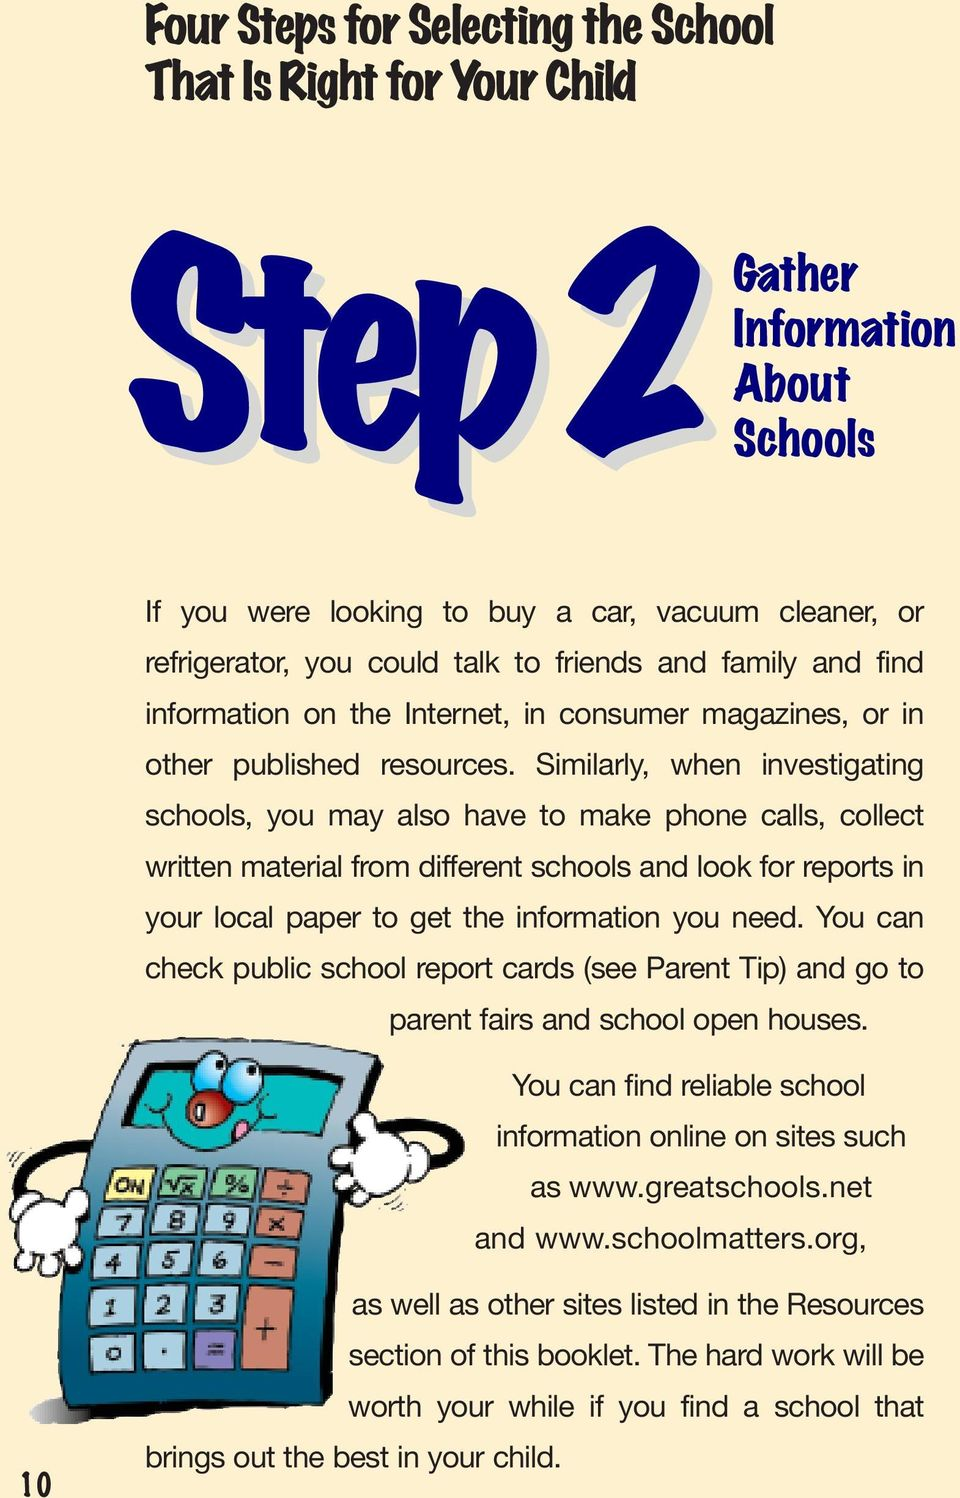 Similarly, when investigating schools, you may also have to make phone calls, collect written material from different schools and look for reports in your local paper to get the information you need.